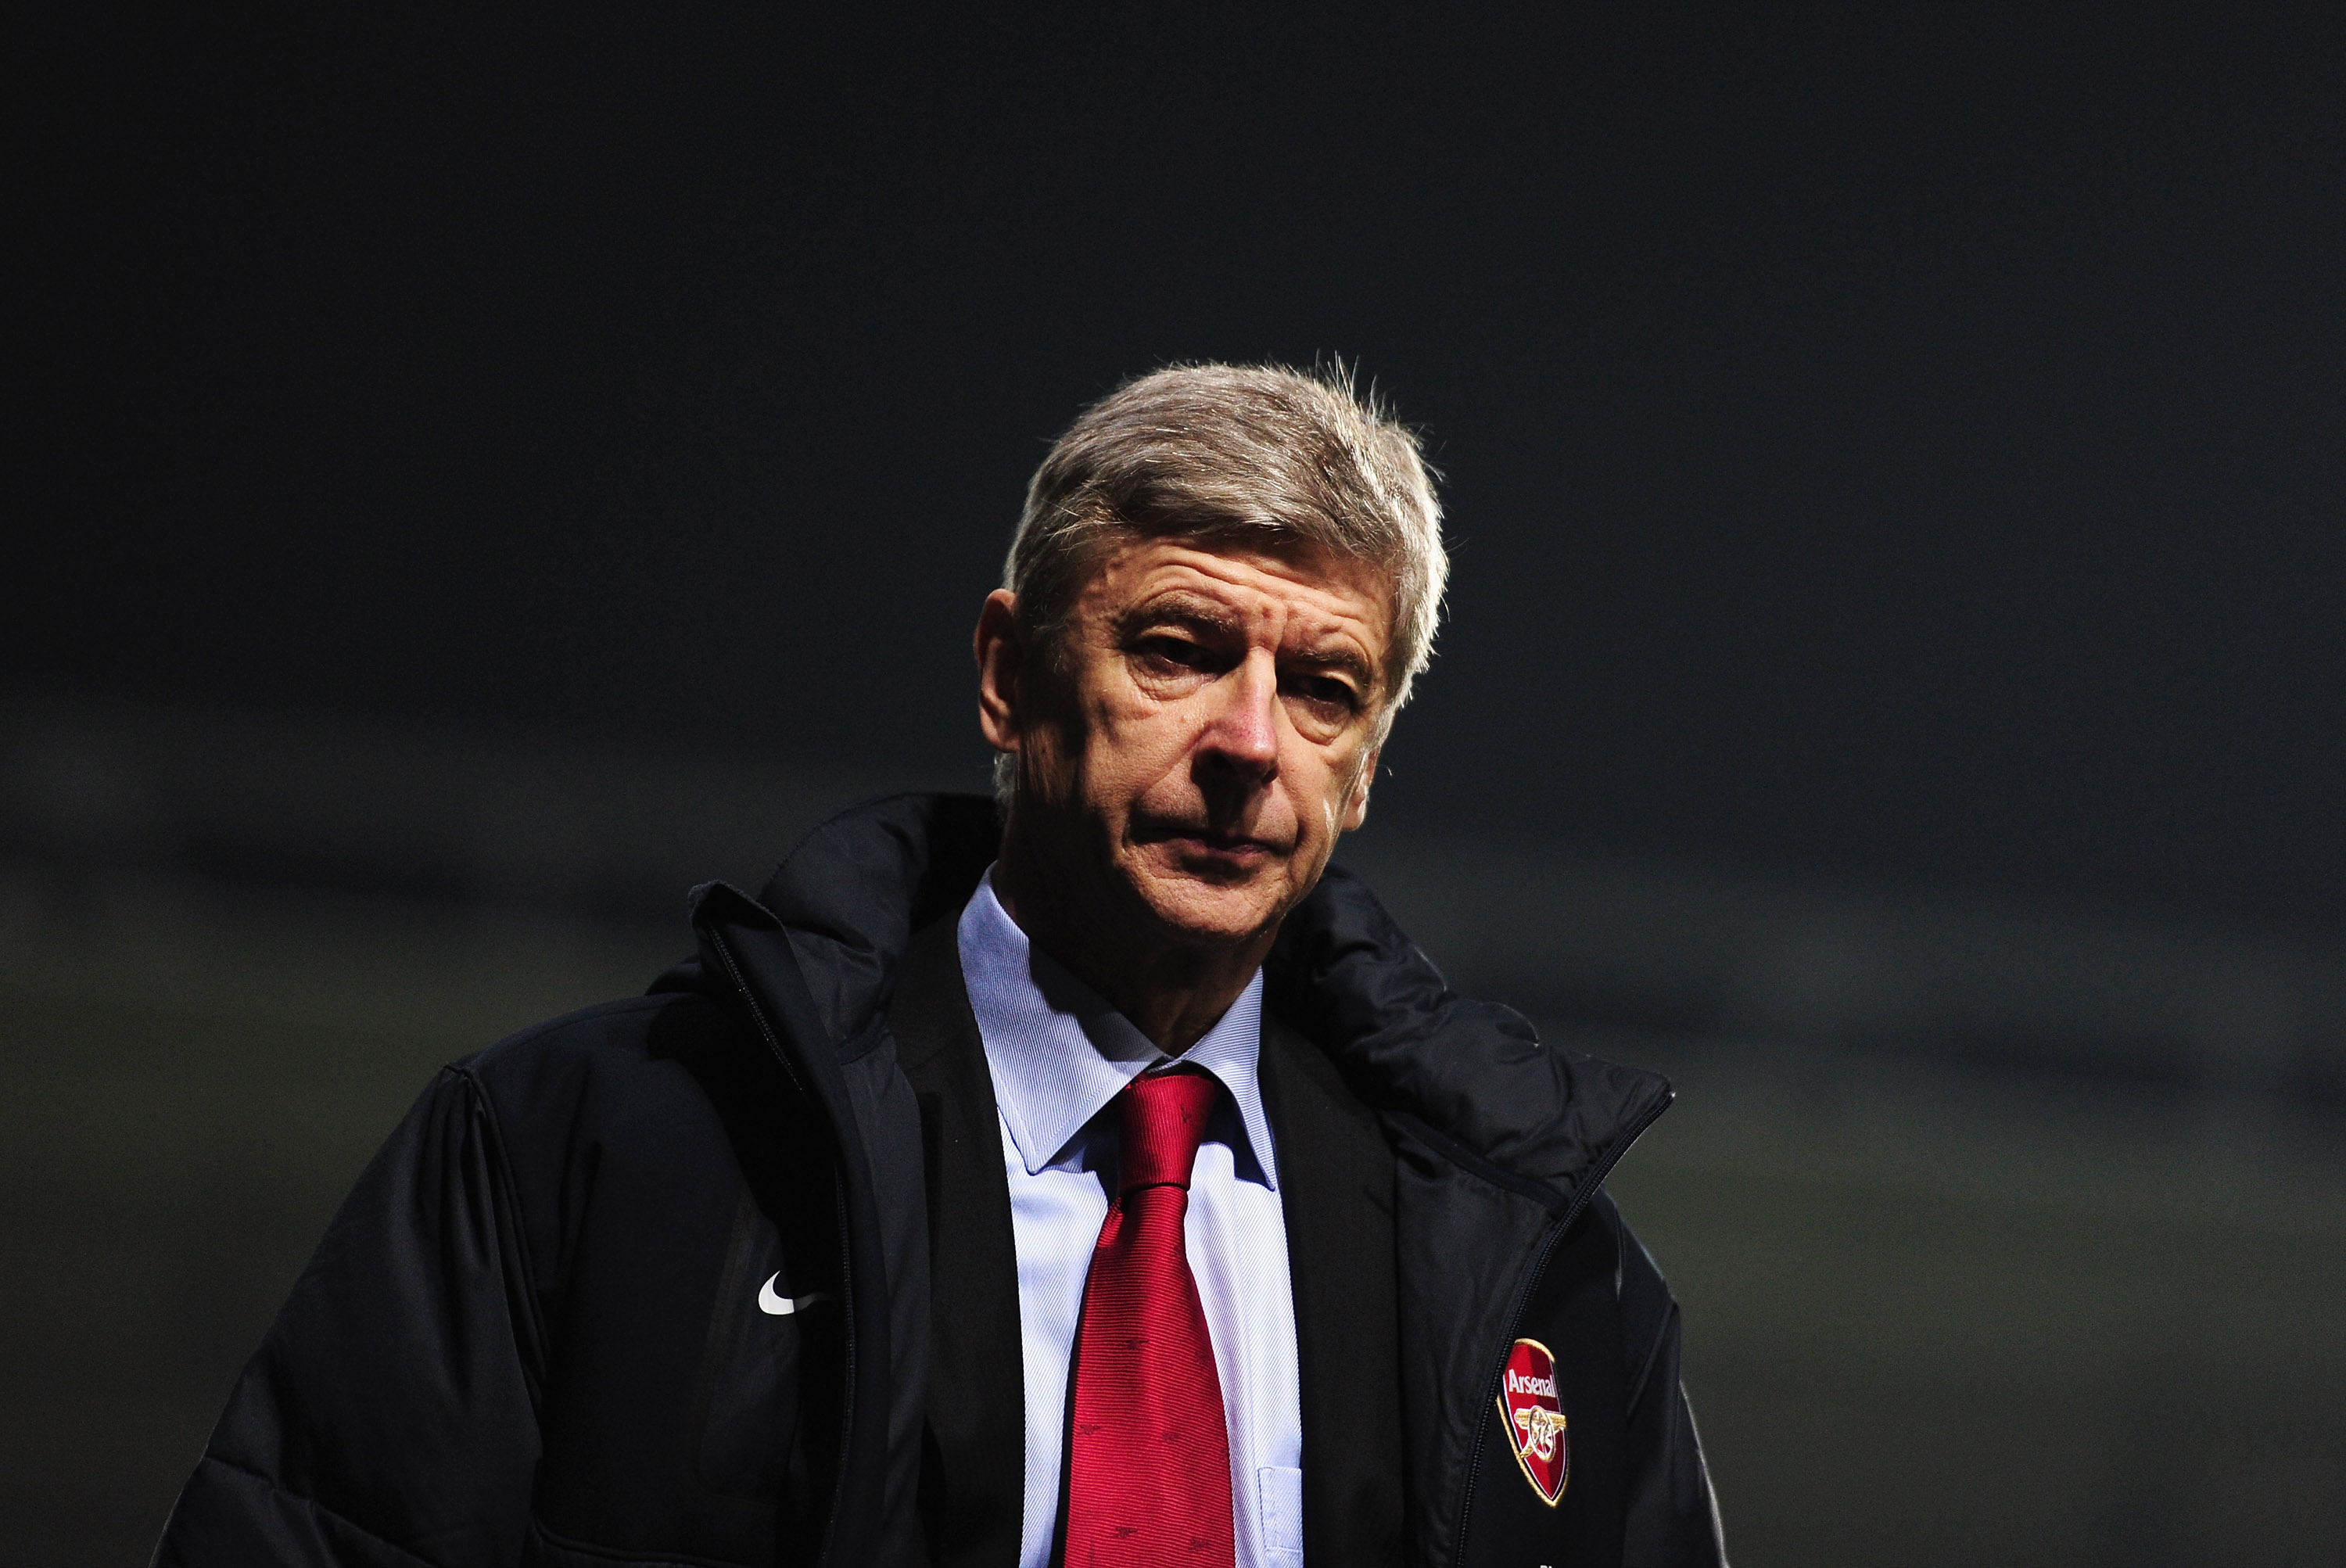 IPSWICH, ENGLAND - JANUARY 12:  Arsene Wenger, Manager of Arsenal walks off at half time during the Carling Cup Semi Final First Leg match between Ipswich Town and Arsenal at Portman Road on January 12, 2011 in Ipswich, England.  (Photo by Jamie McDonald/